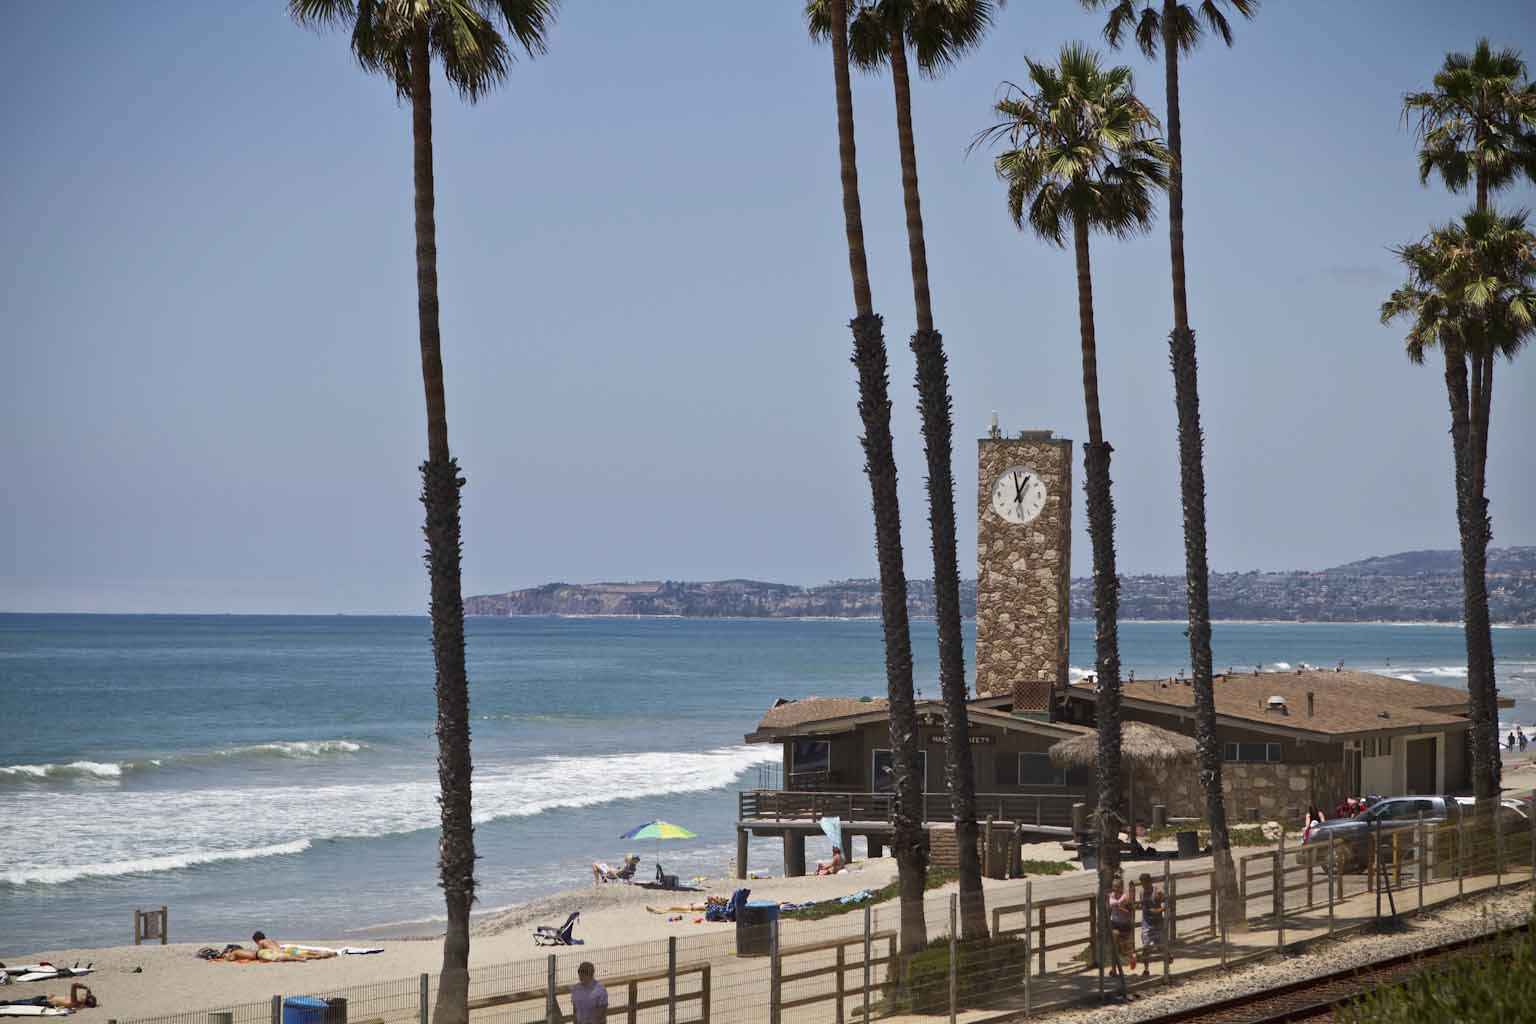 San Clemente clock tower